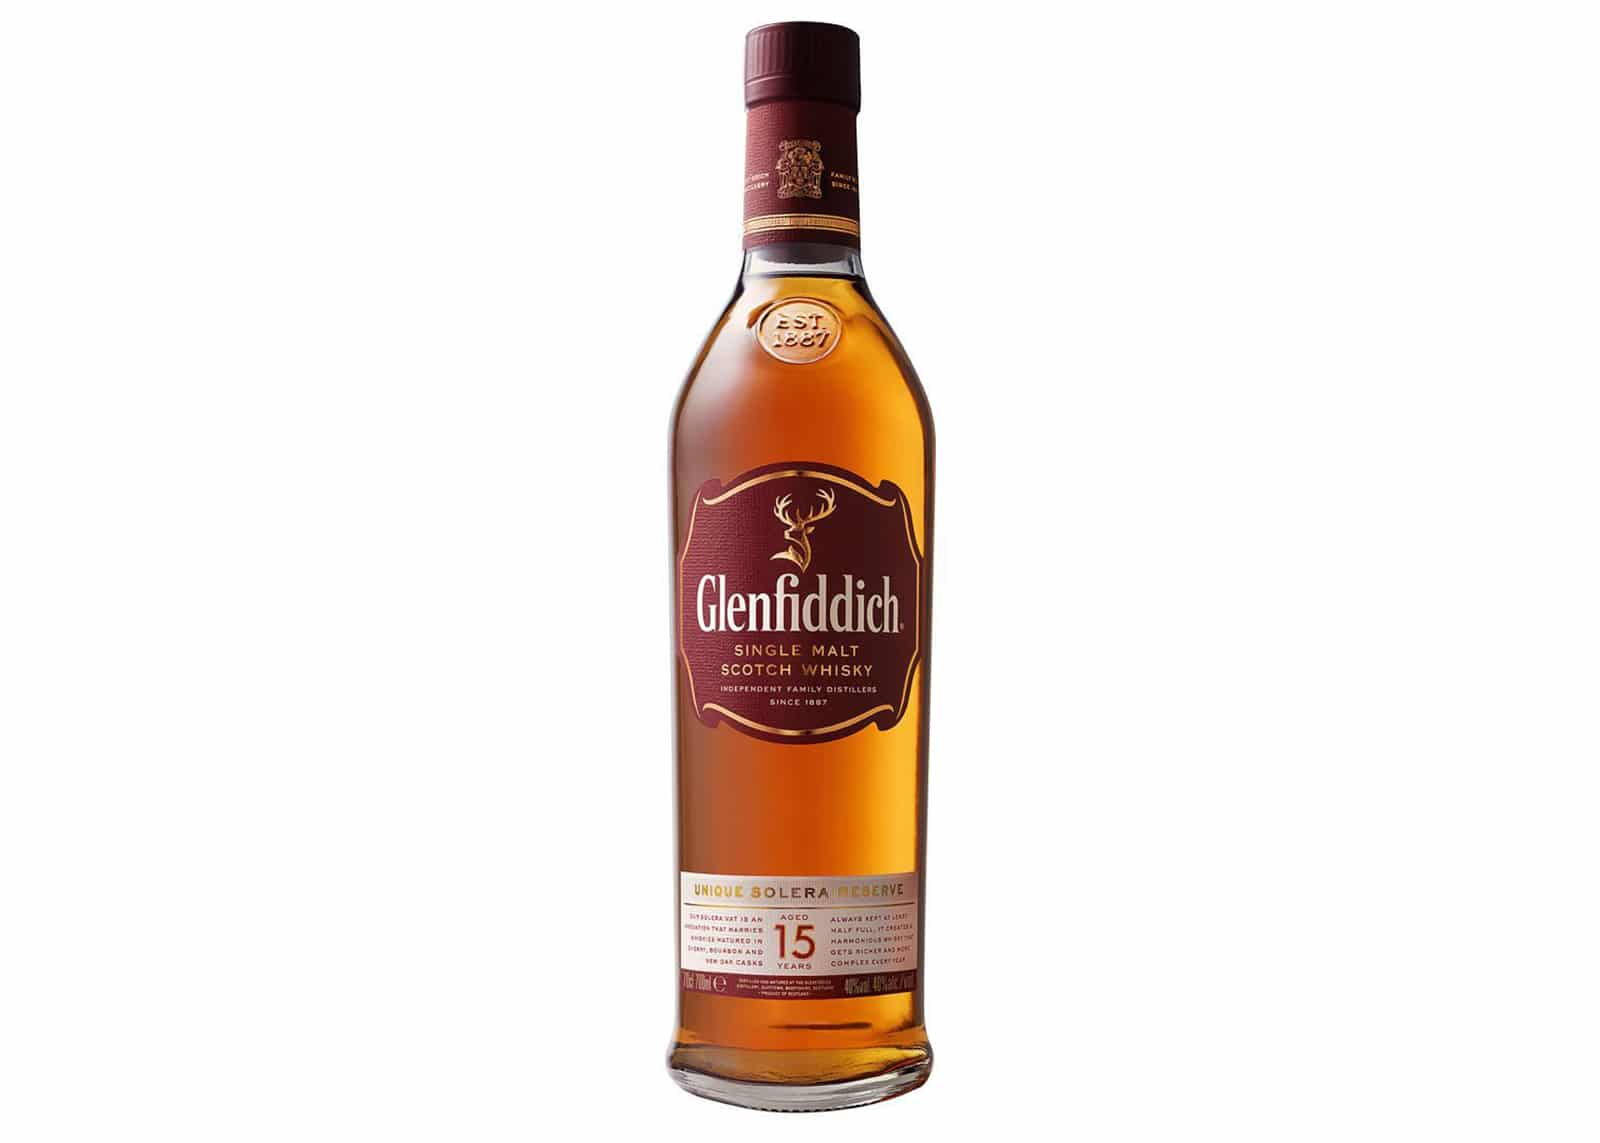 Glenfiddich-Aged-15-Years